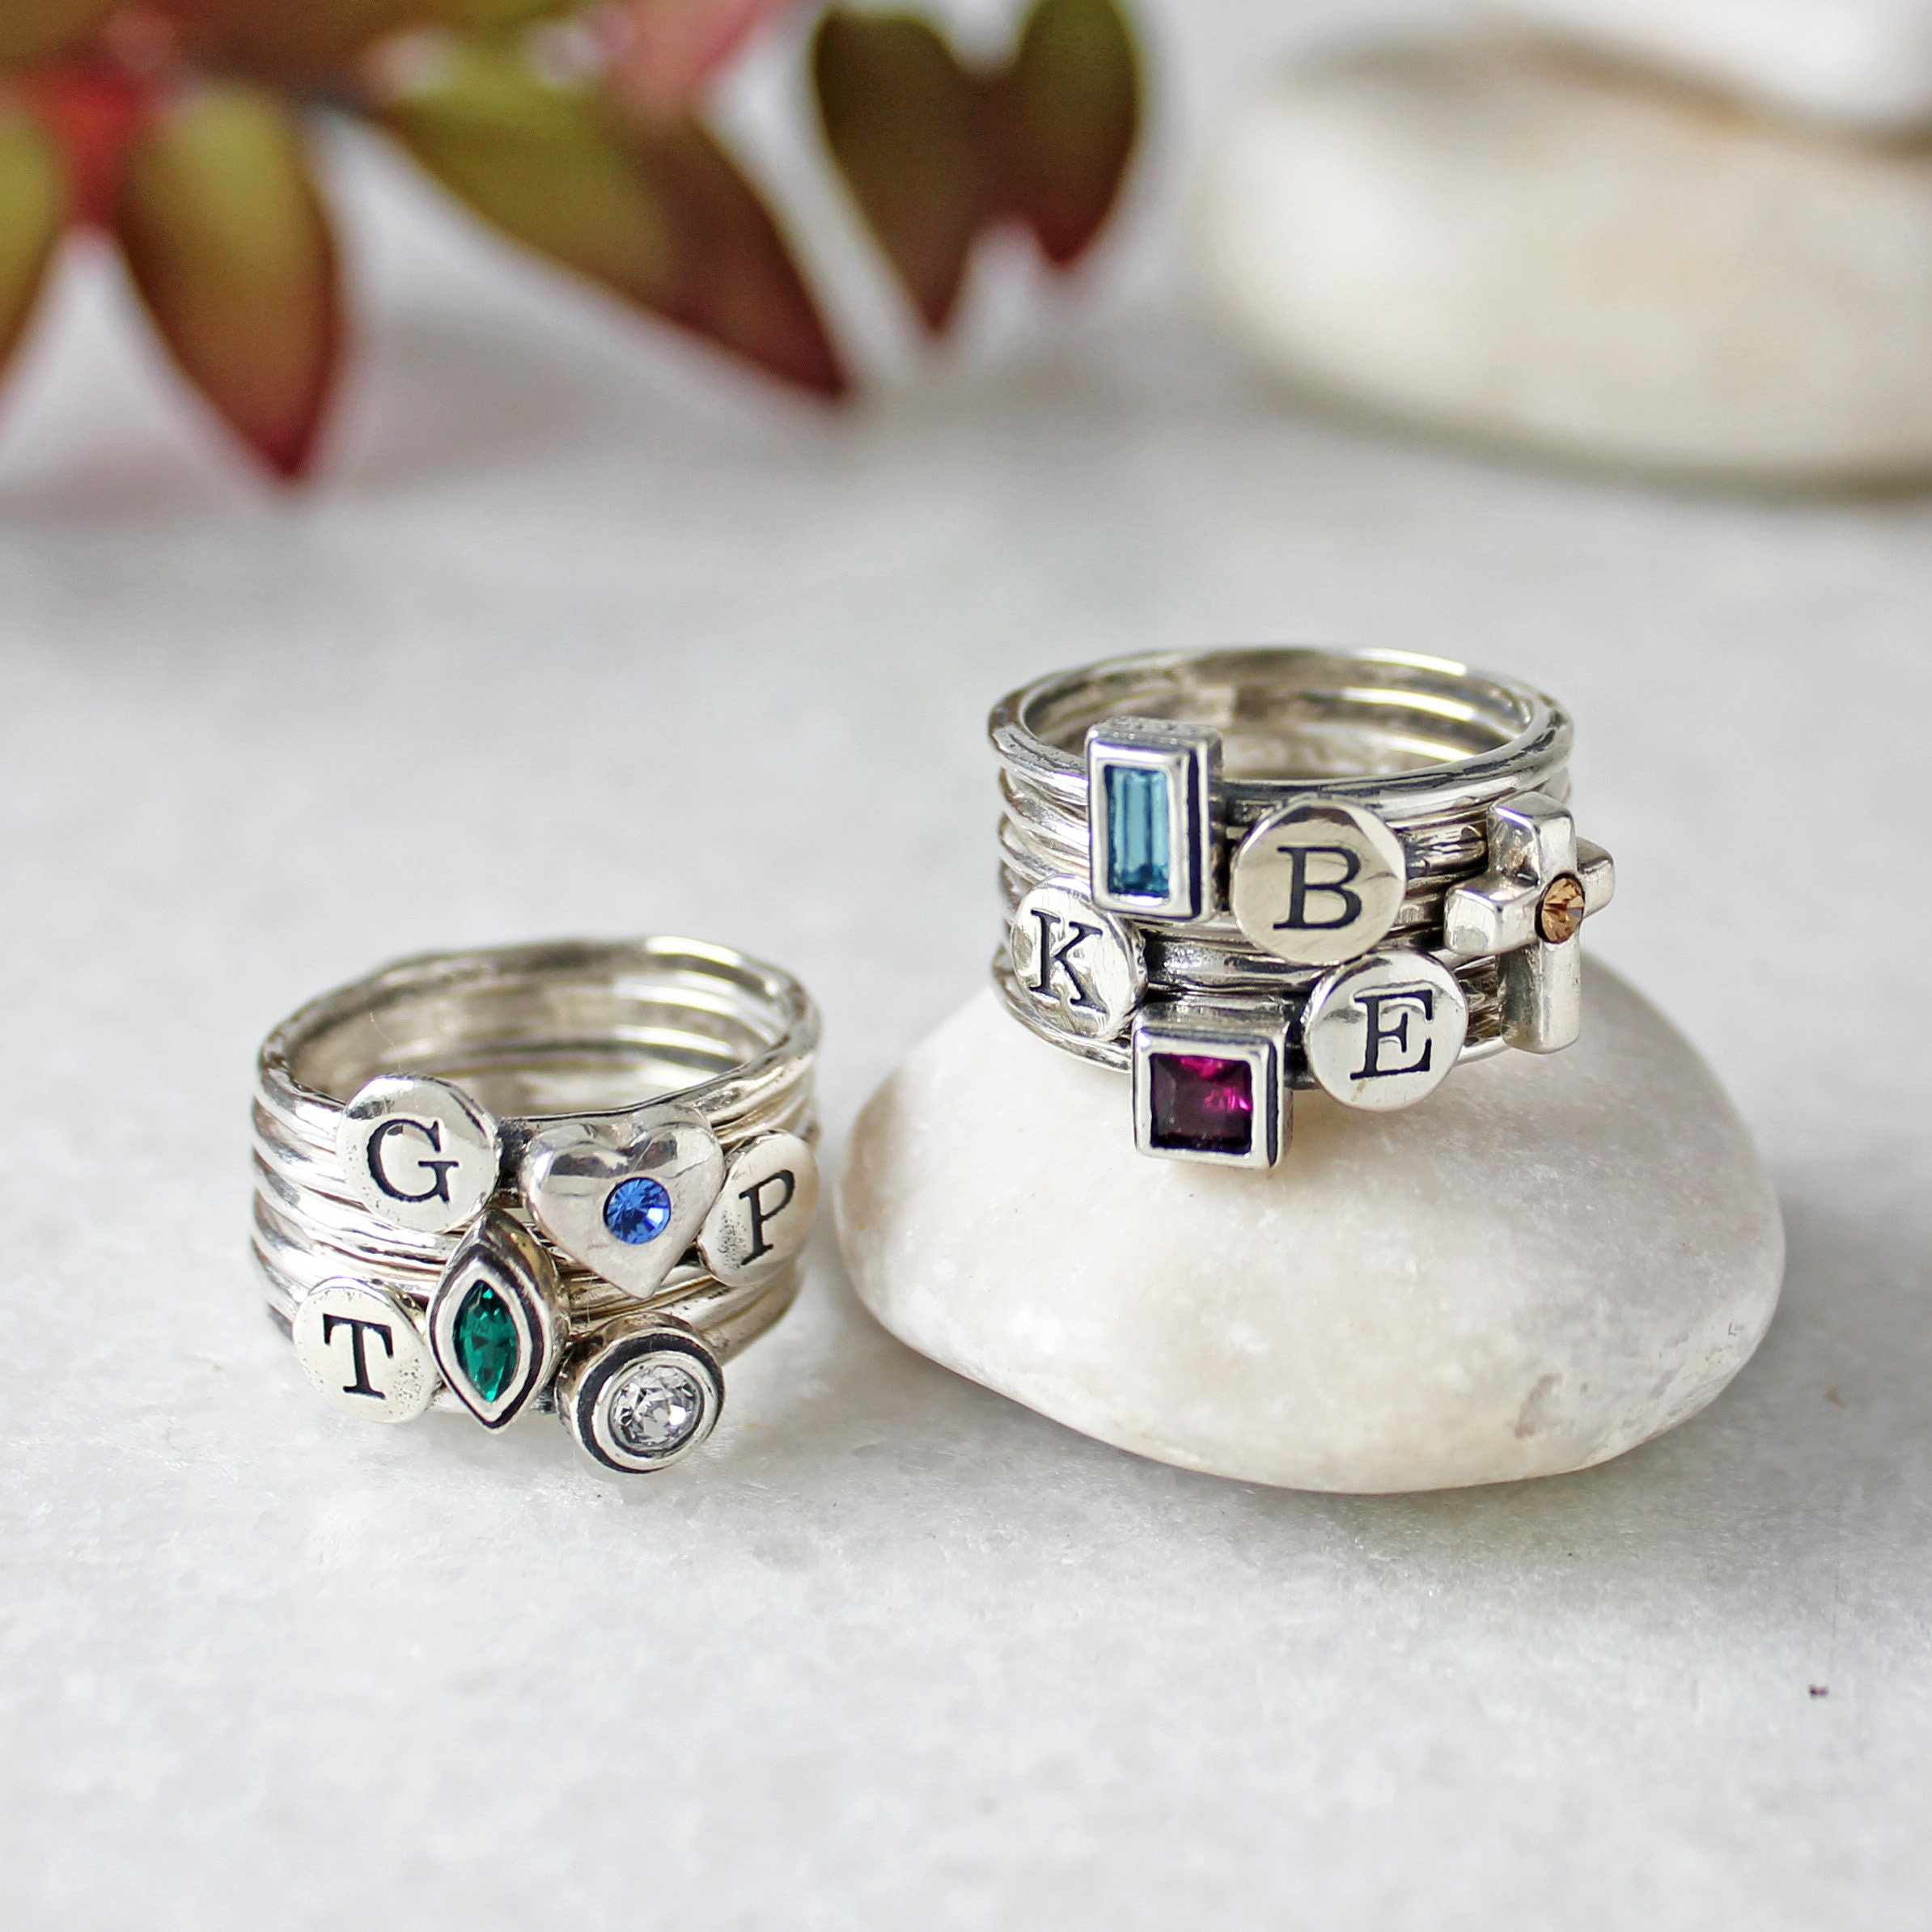 Design Your Own Ring: Design Your Own Silver Stack Birthstone And Initial Ring Set